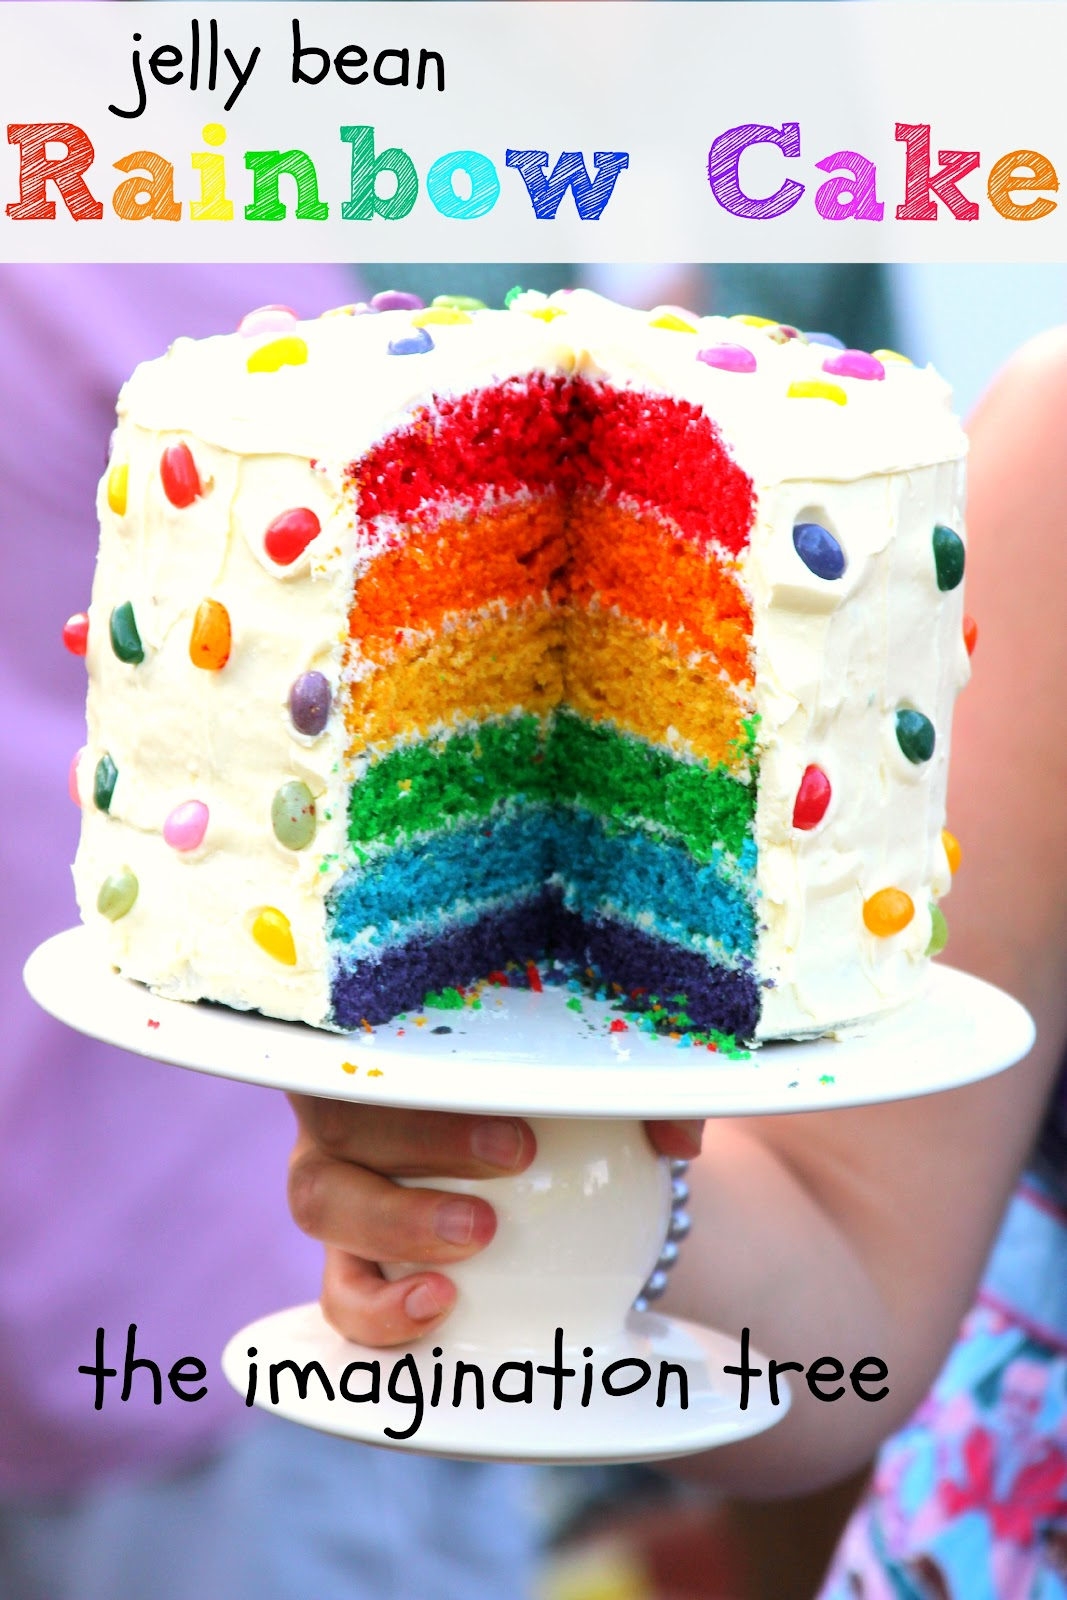 When I First Saw This Rainbow Cake Idea A Couple Of Years Ago Was Amazed By It But Completely Put Off Making Because The Complicated Instructions